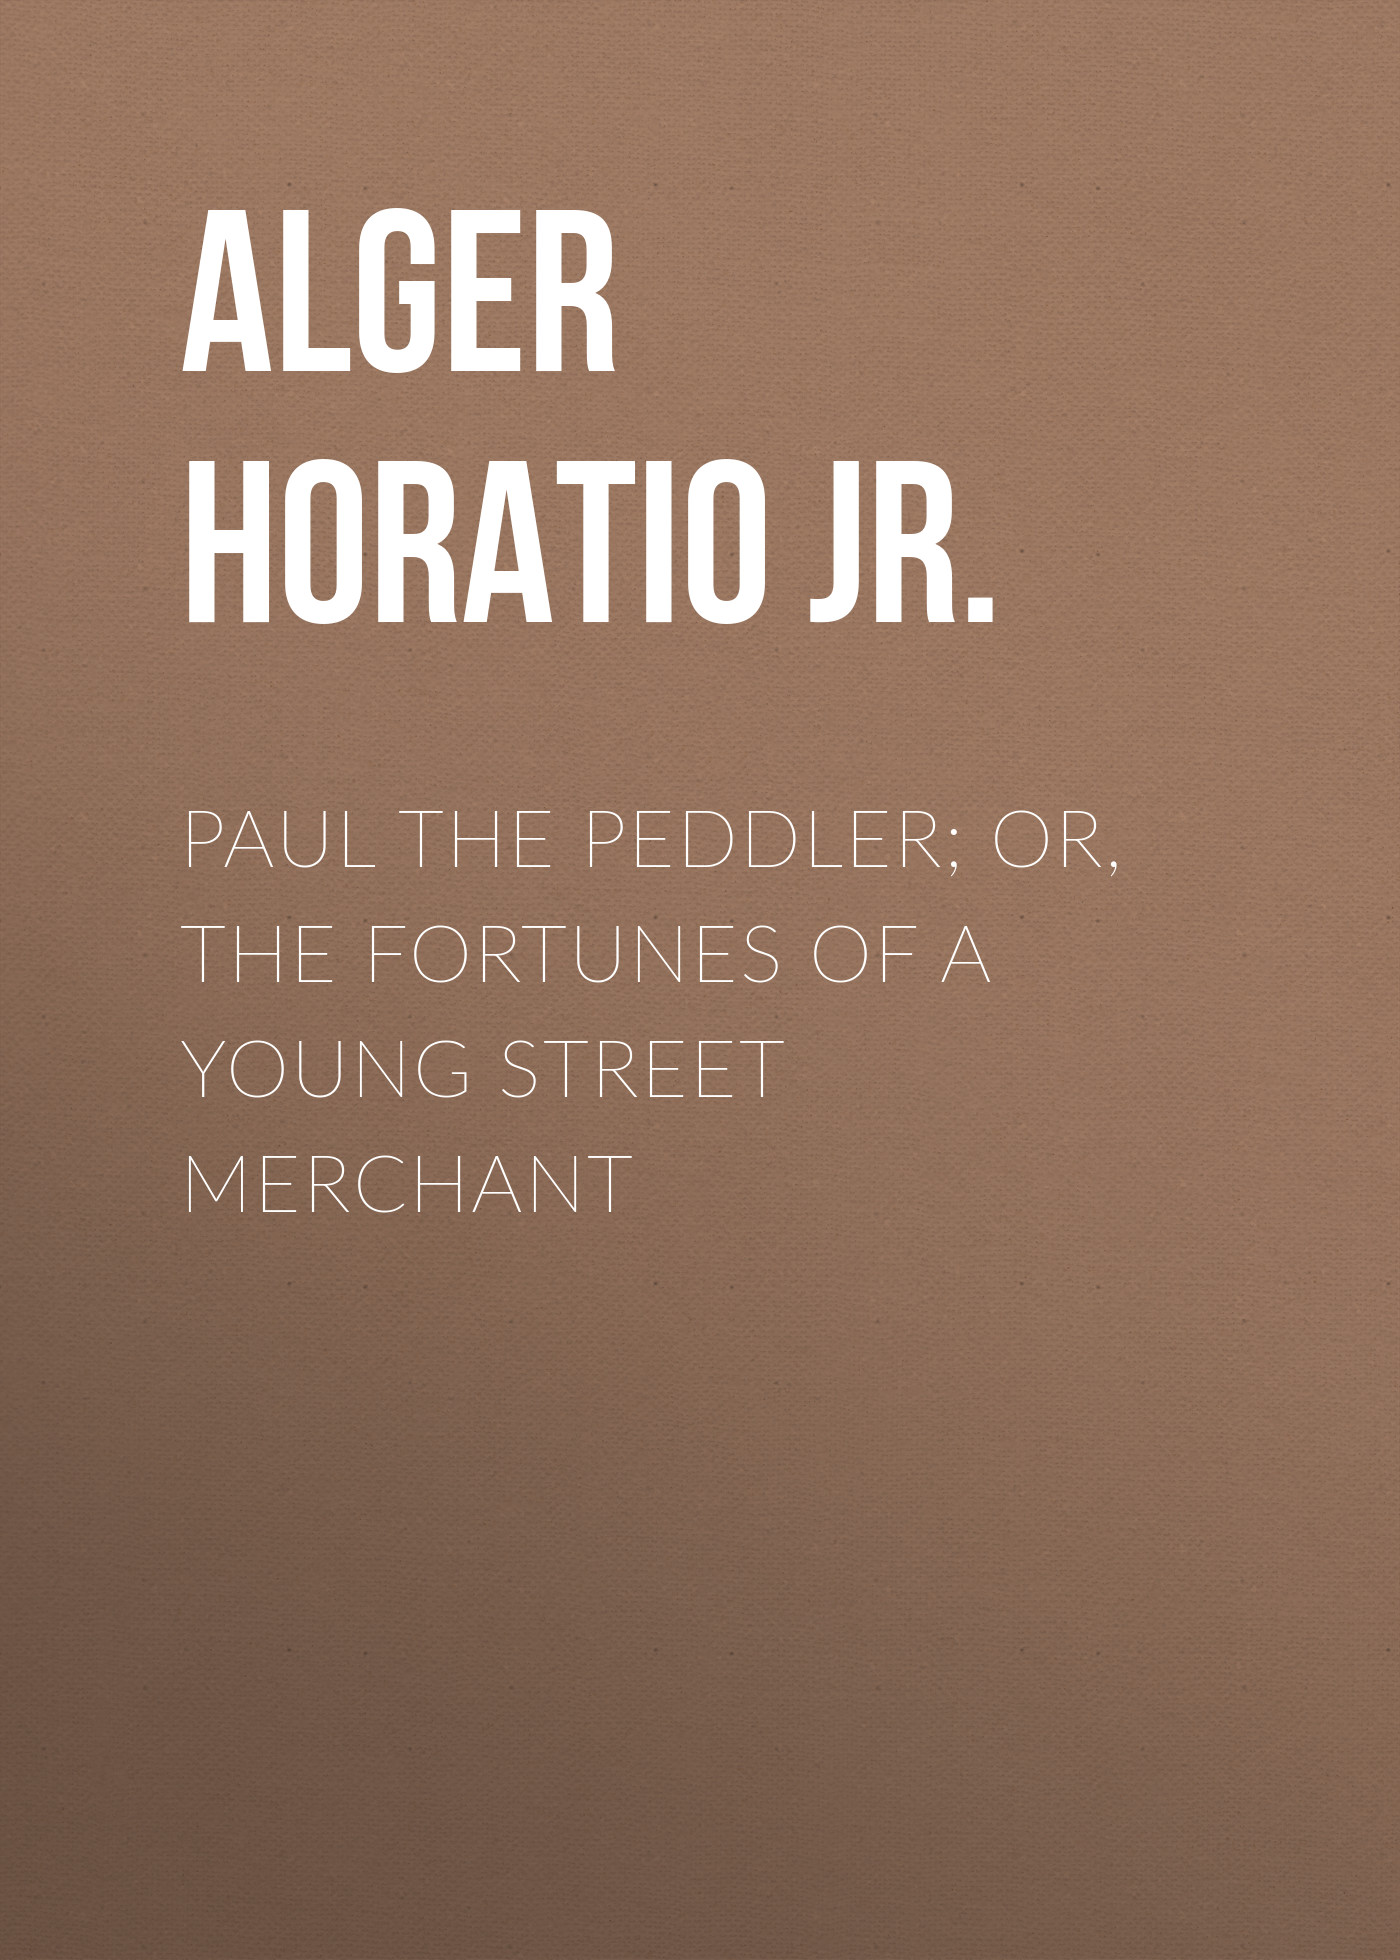 Alger Horatio Jr. Paul the Peddler; Or, The Fortunes of a Young Street Merchant цена 2017